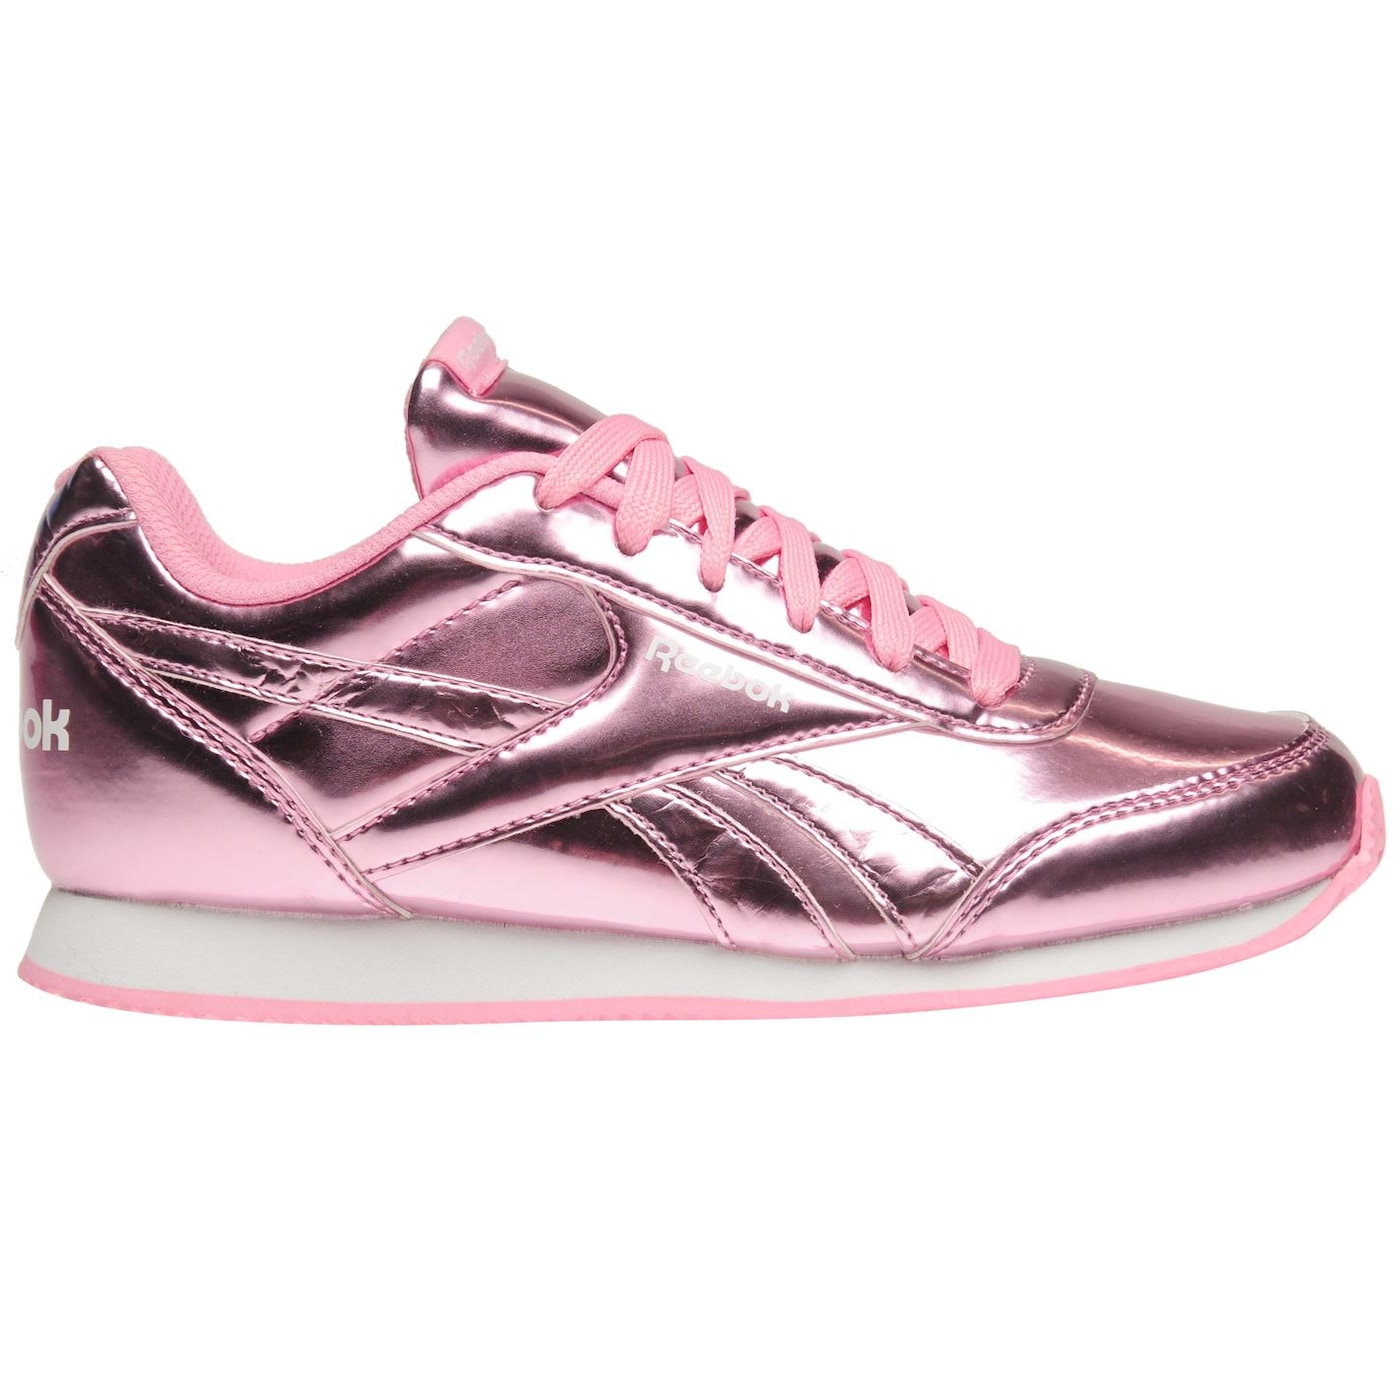 Reebok Royal Classic Jogger 2 Girls Trainers